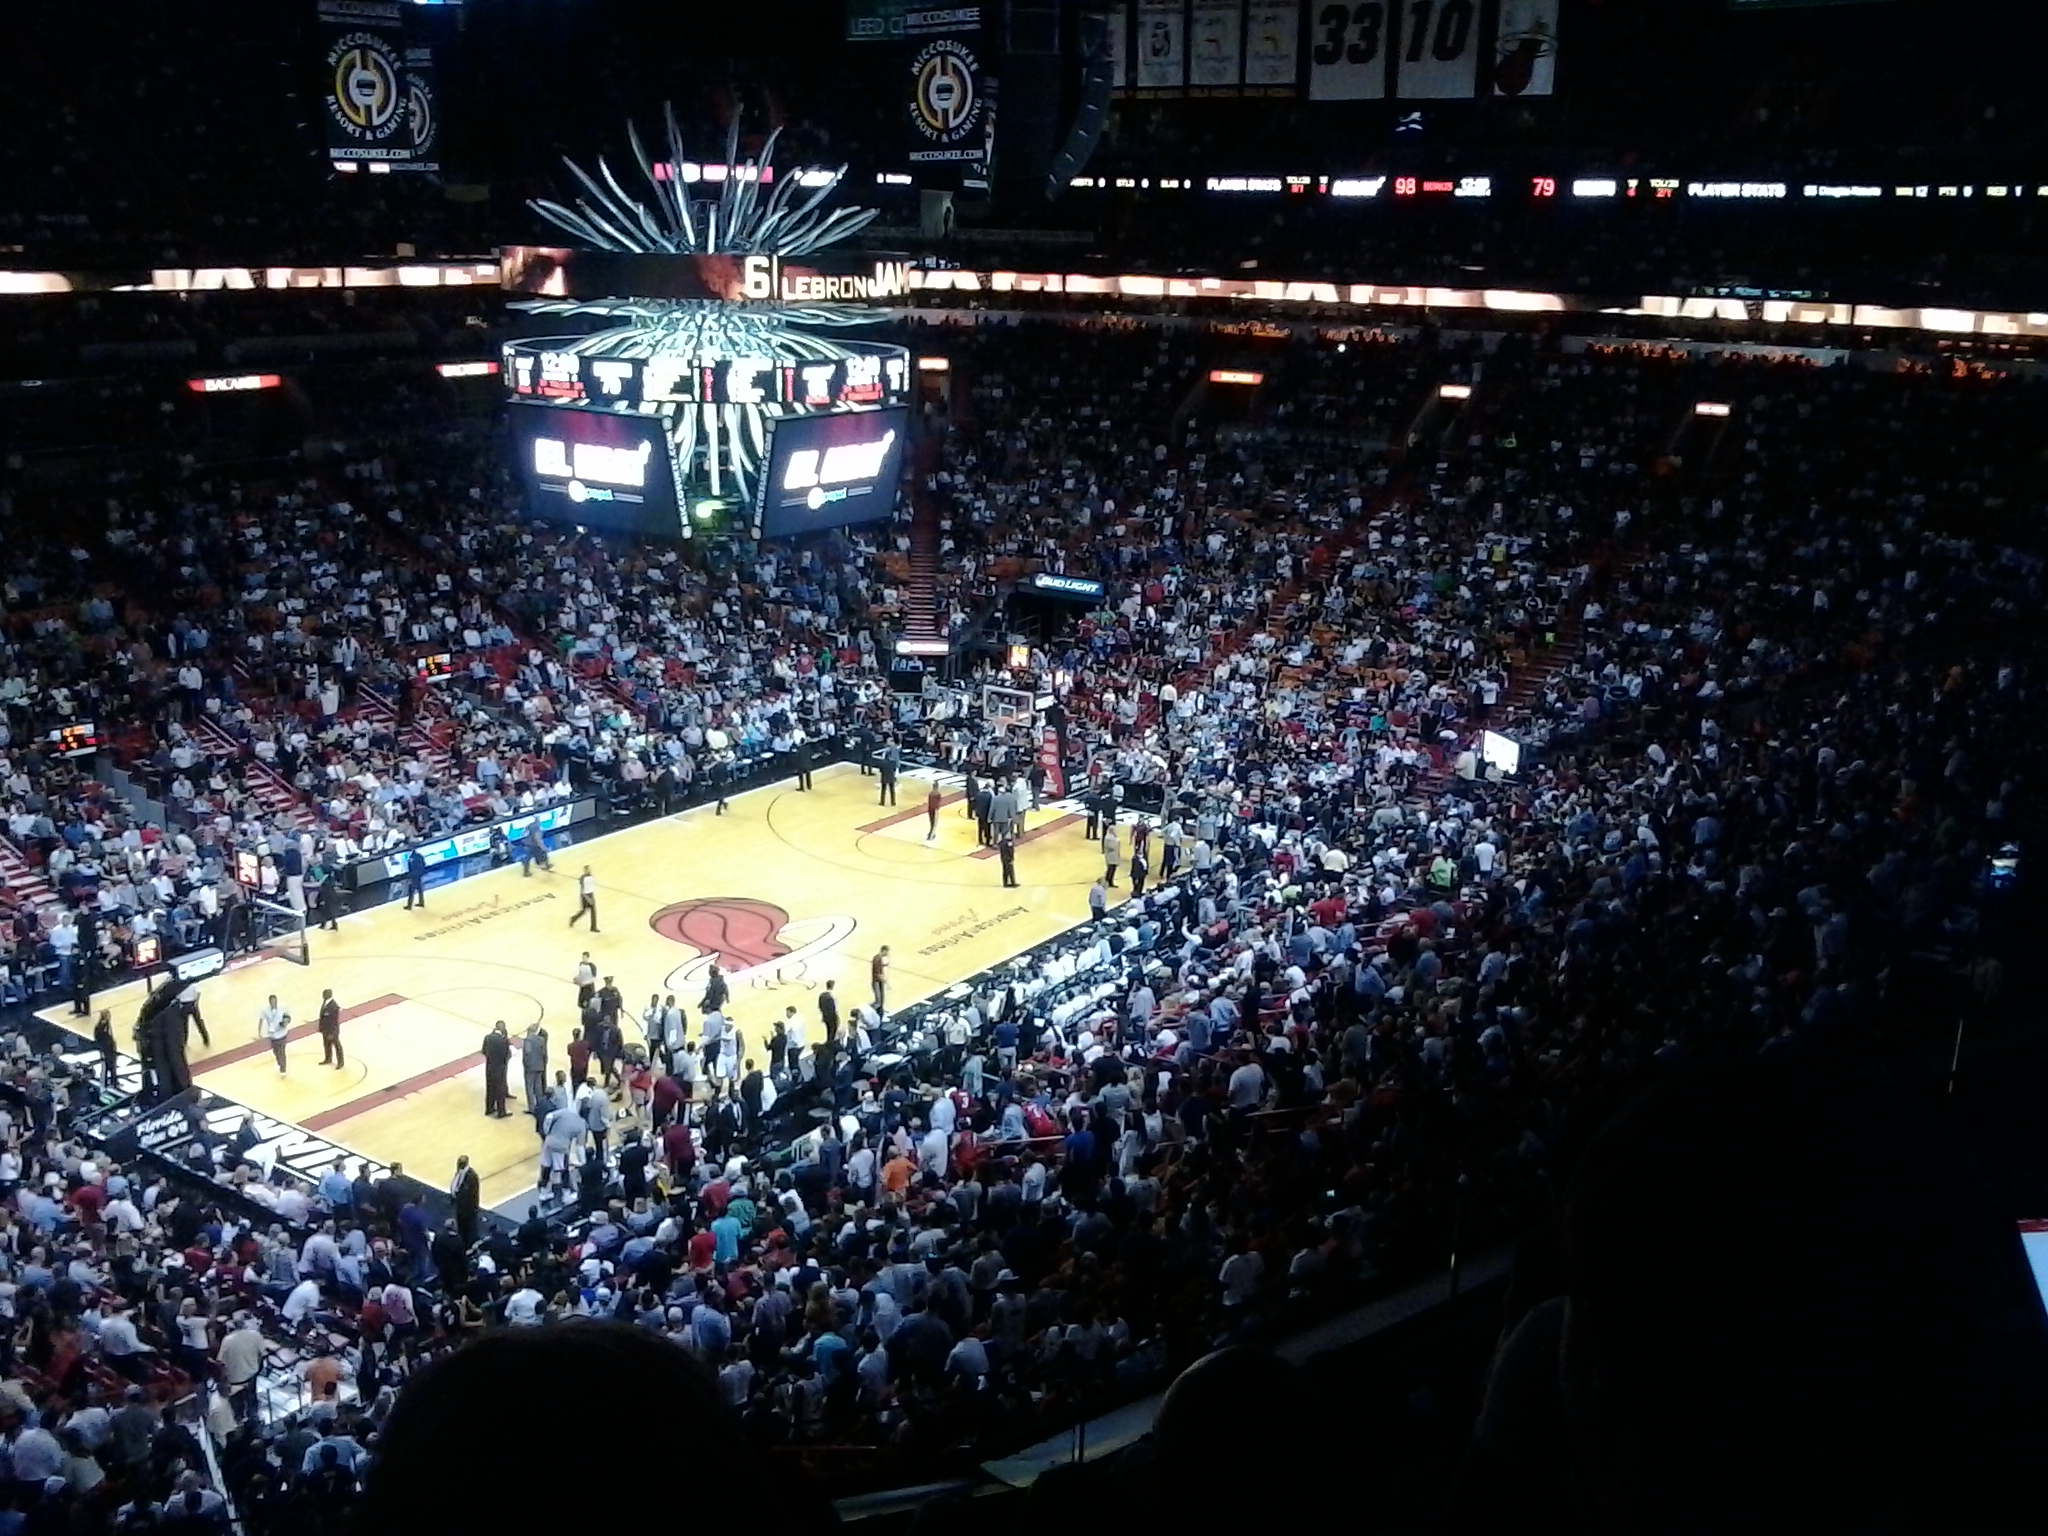 American Airlines Arena - LeBron James